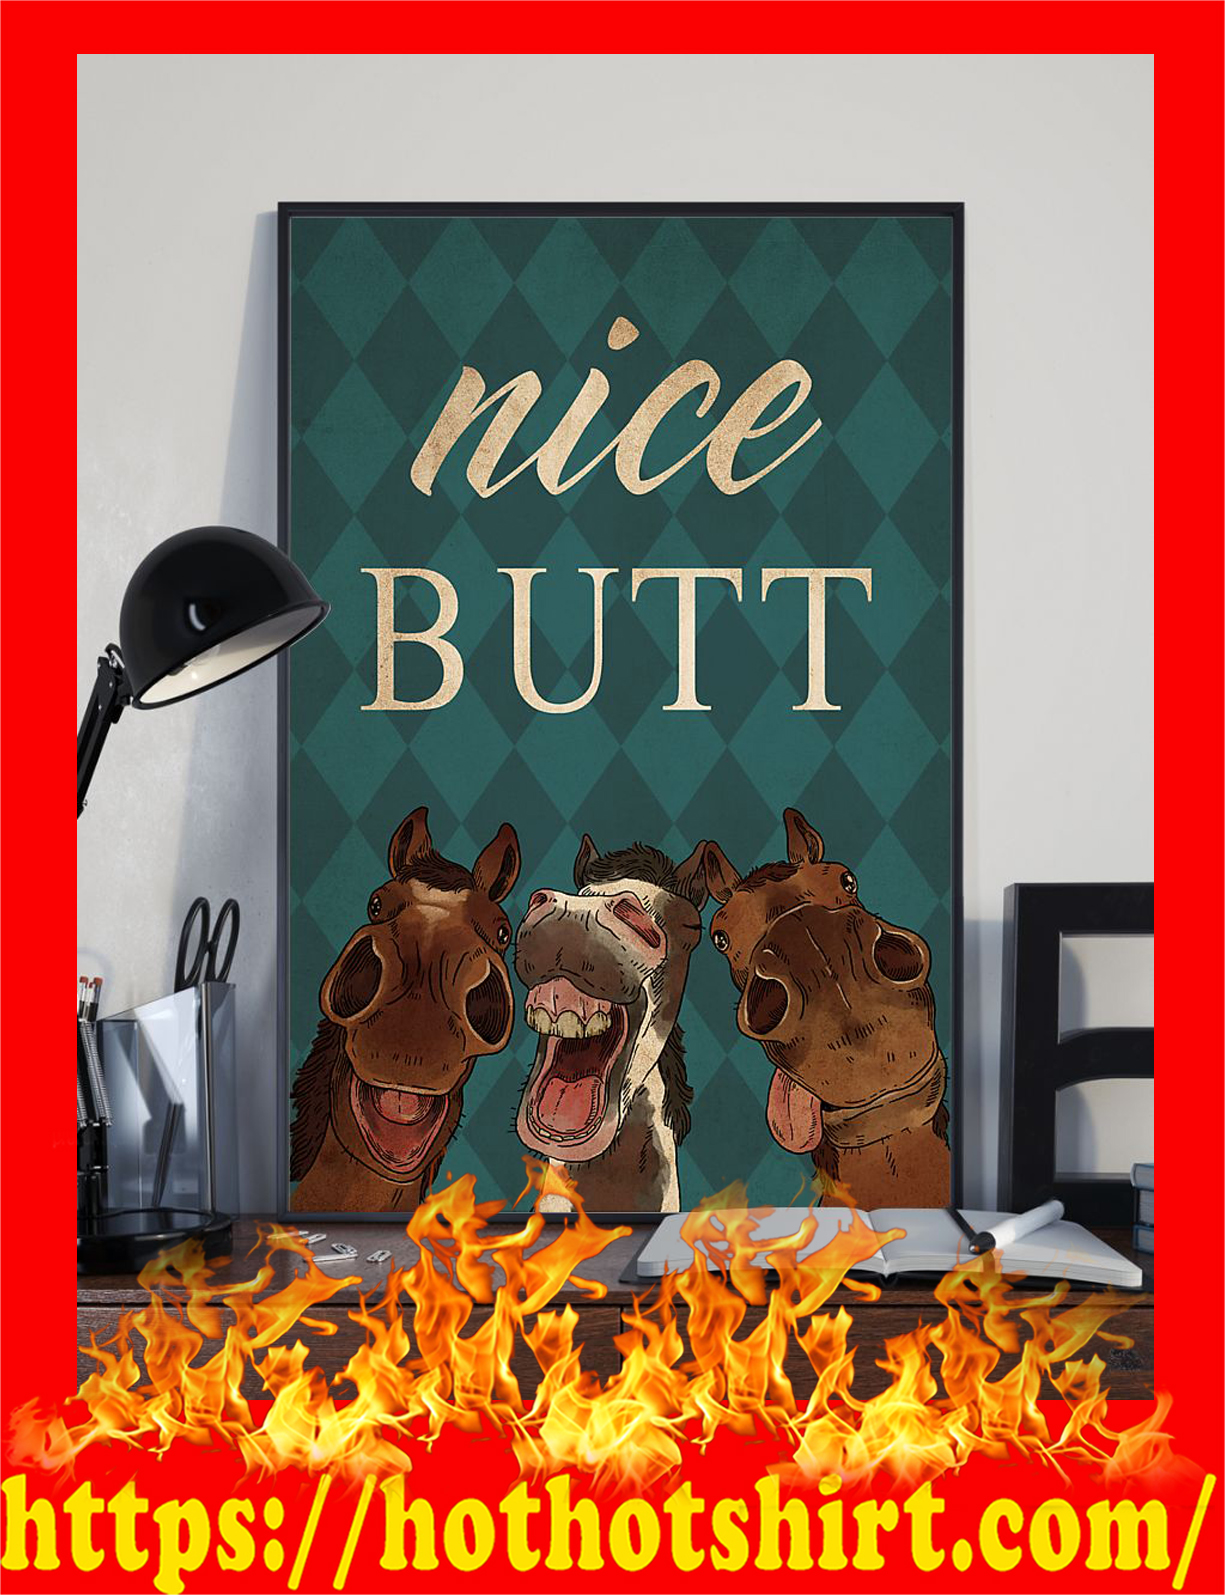 Horse nice butt poster - Pic 1